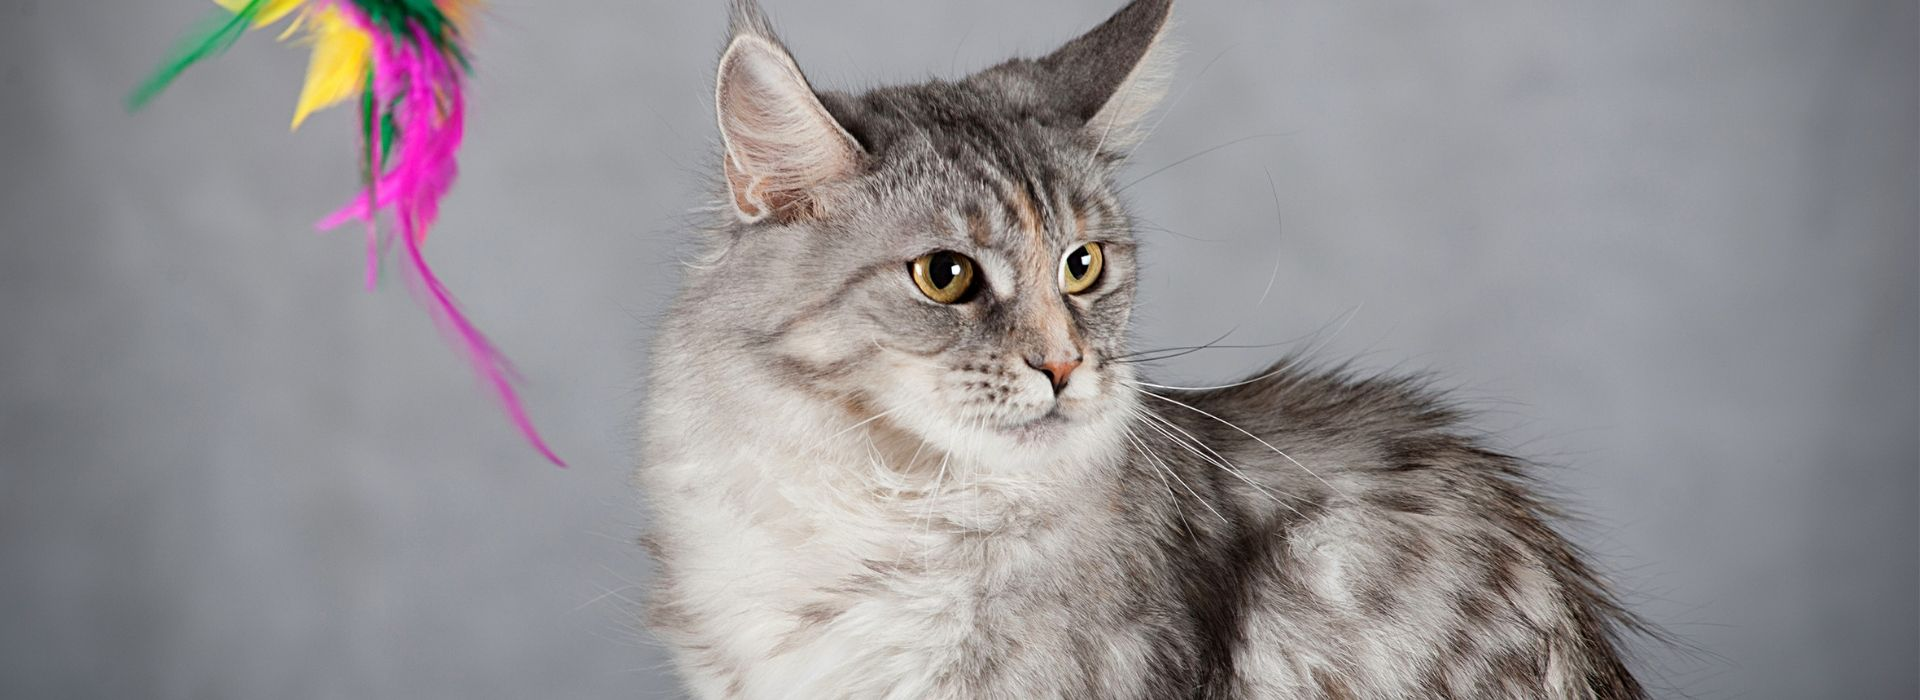 maine coon variante smoke